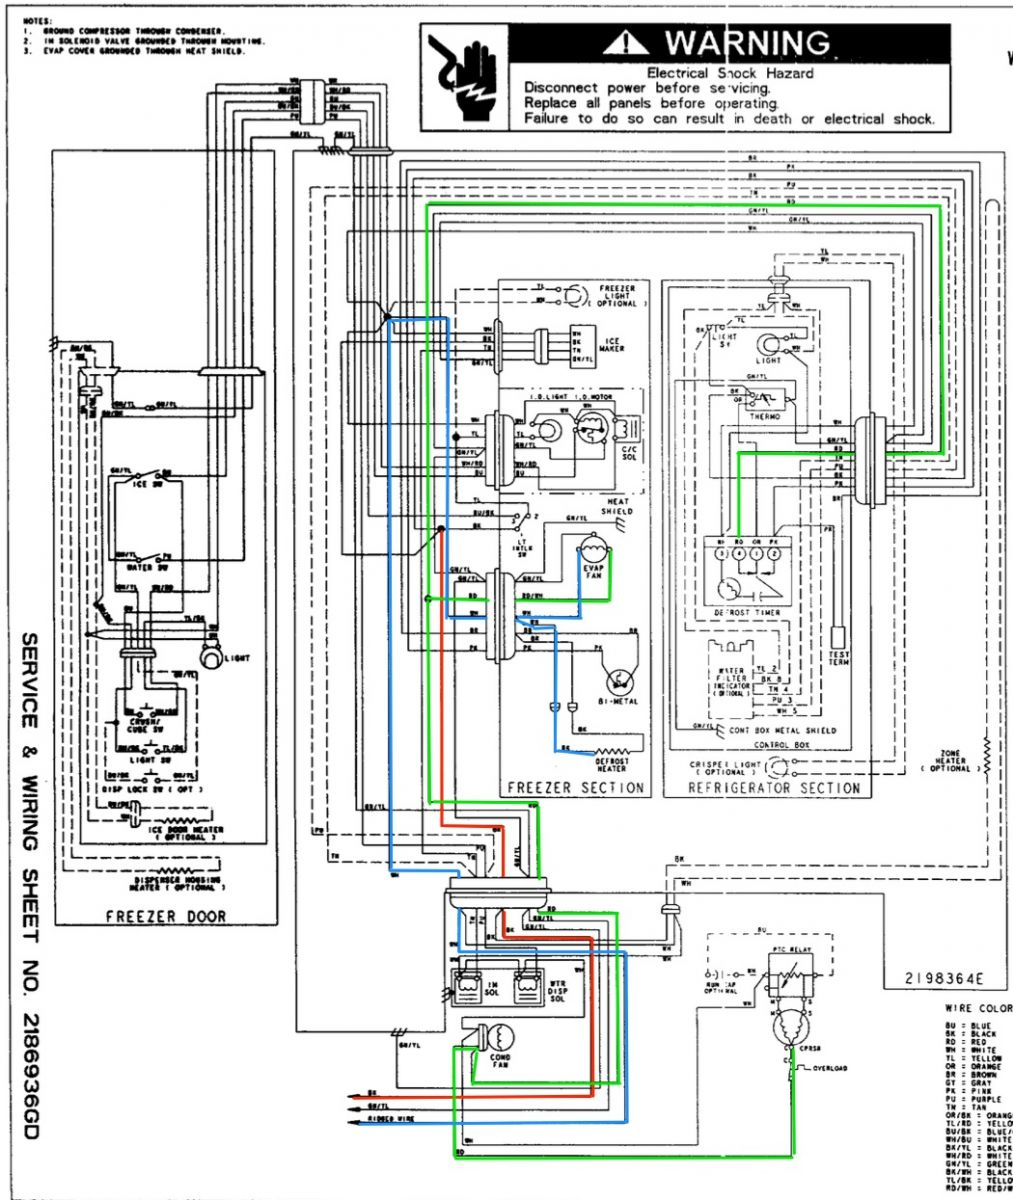 [DIAGRAM_4FR]  Whirlpool Washing Machine Wiring - 1998 Gmc Radio Wiring Diagram for Wiring  Diagram Schematics | Whirlpool Semi Automatic Washing Machine Wiring Diagram |  | Wiring Diagram Schematics